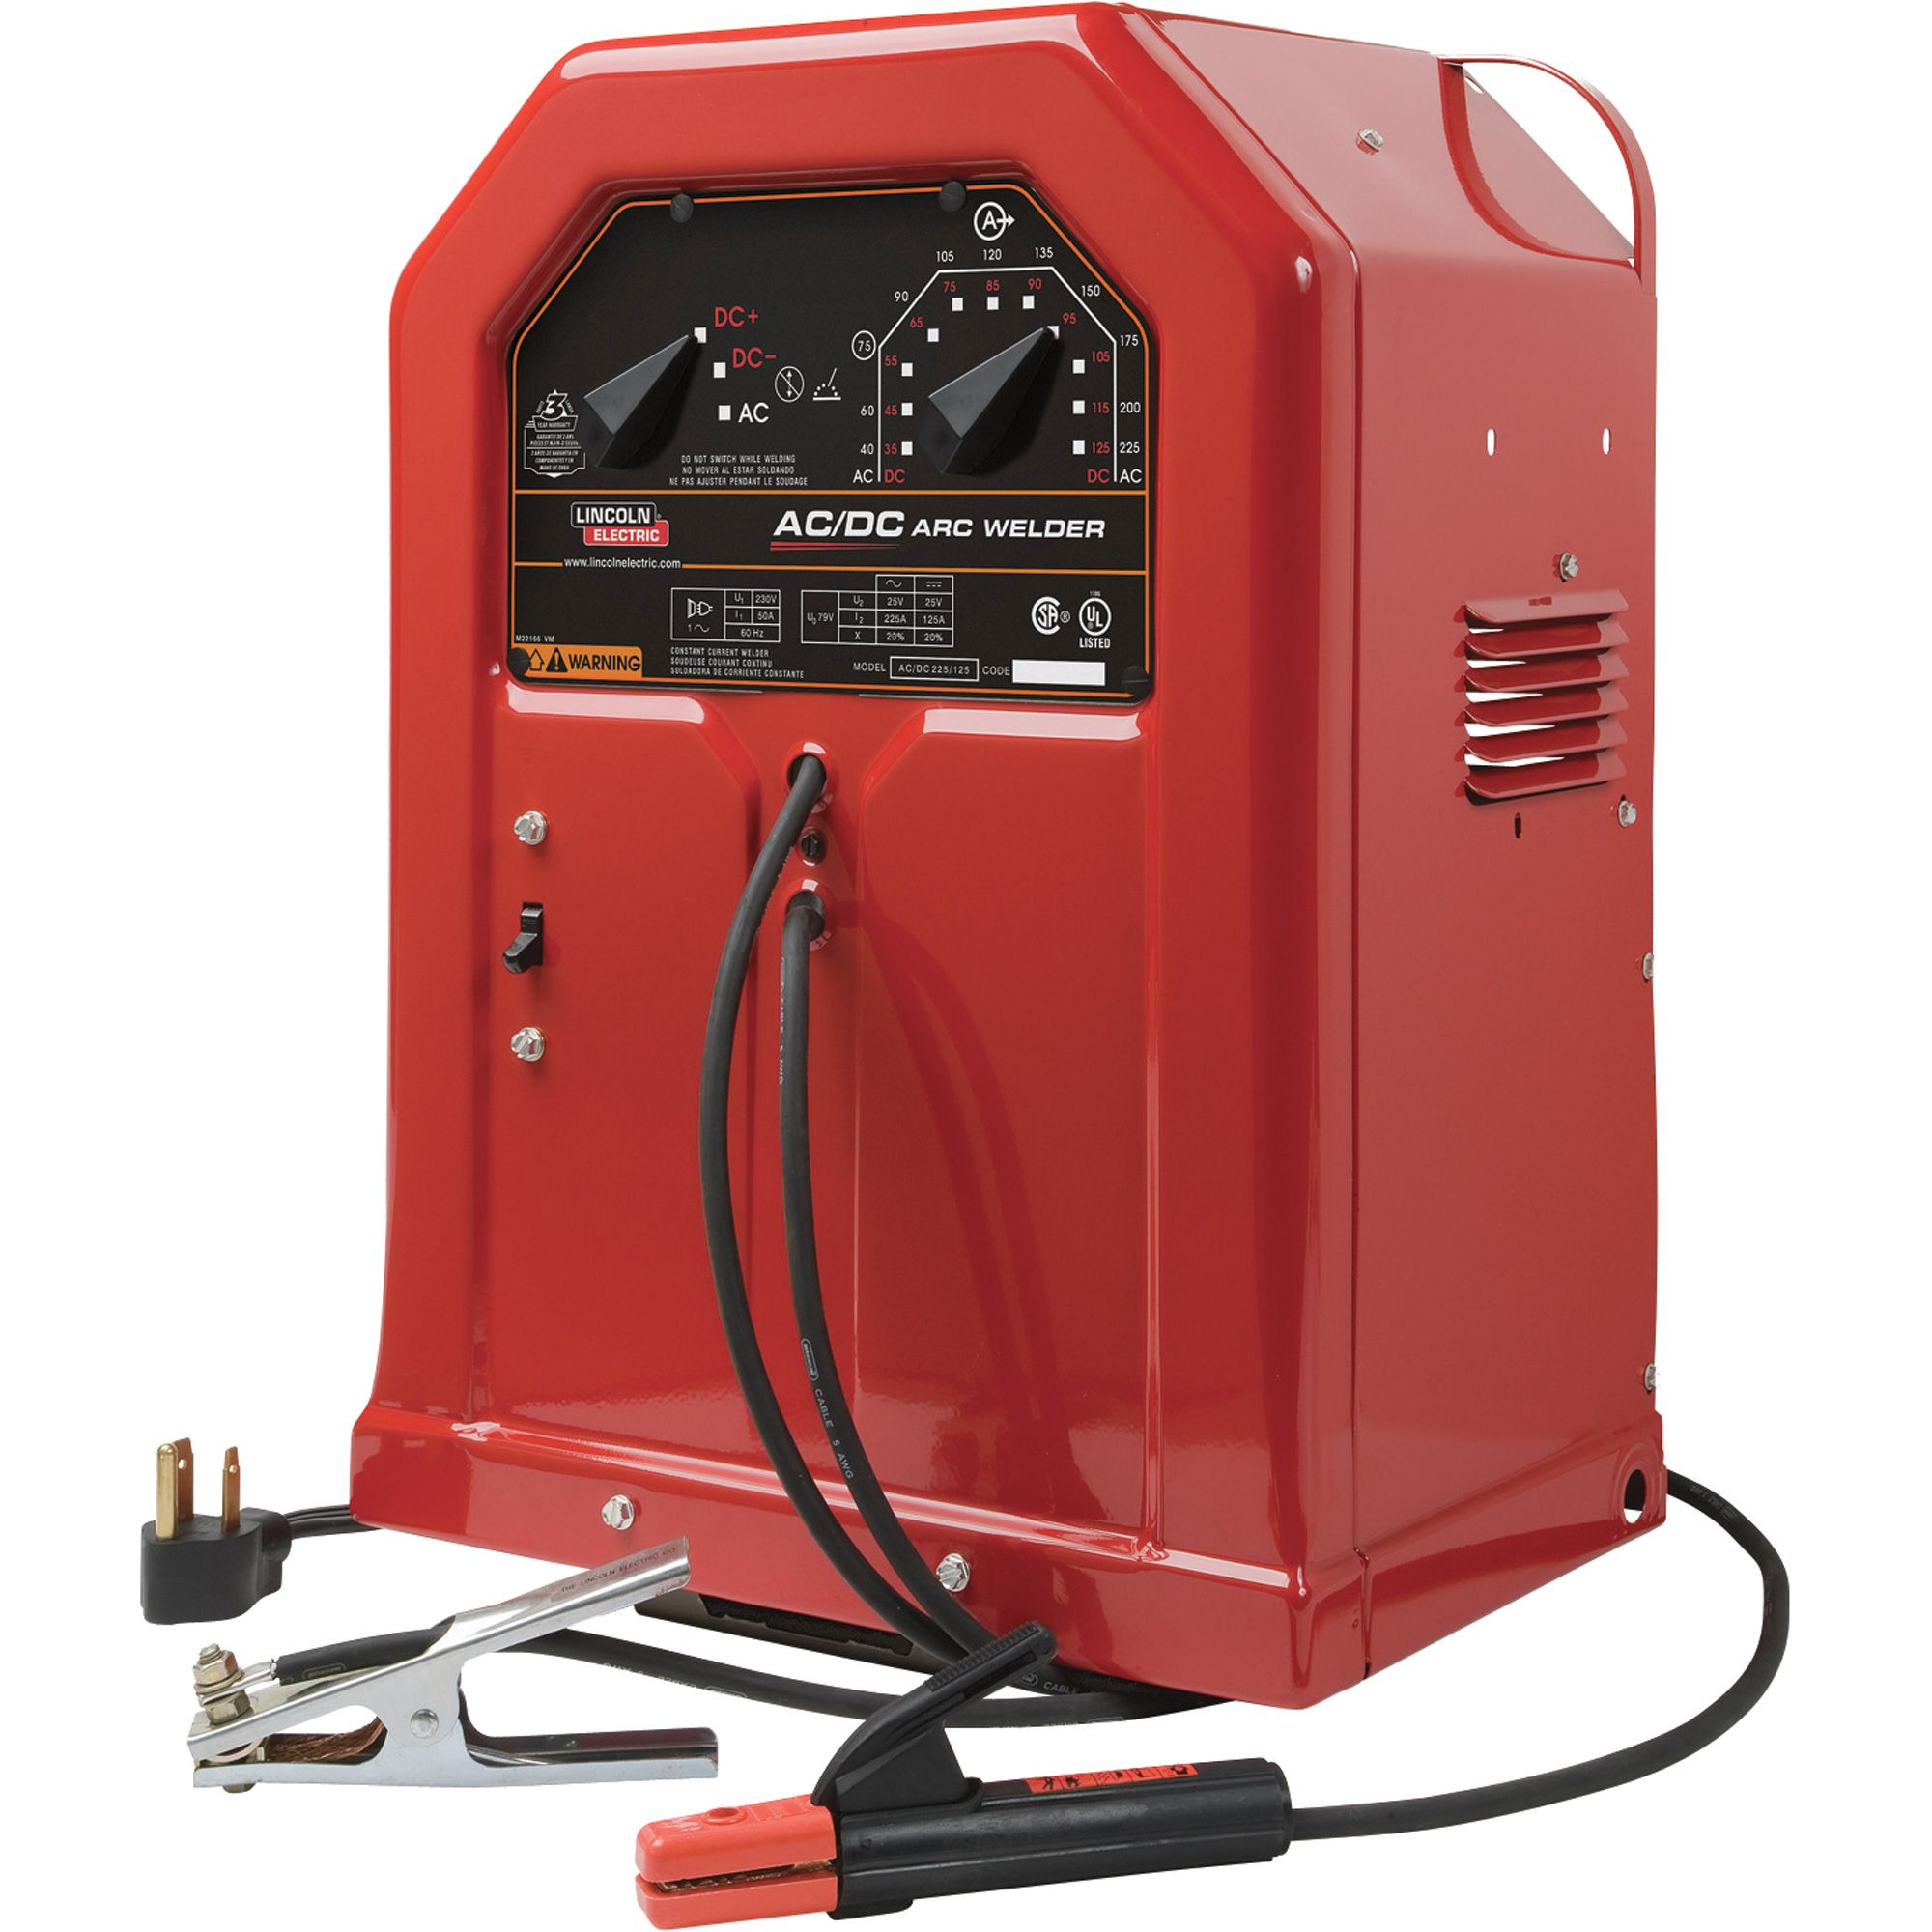 torches industrial electric welders business flux cored wire welder brand manufacturing mig find lincoln welding cutters feed pak metalworking weld and soldering